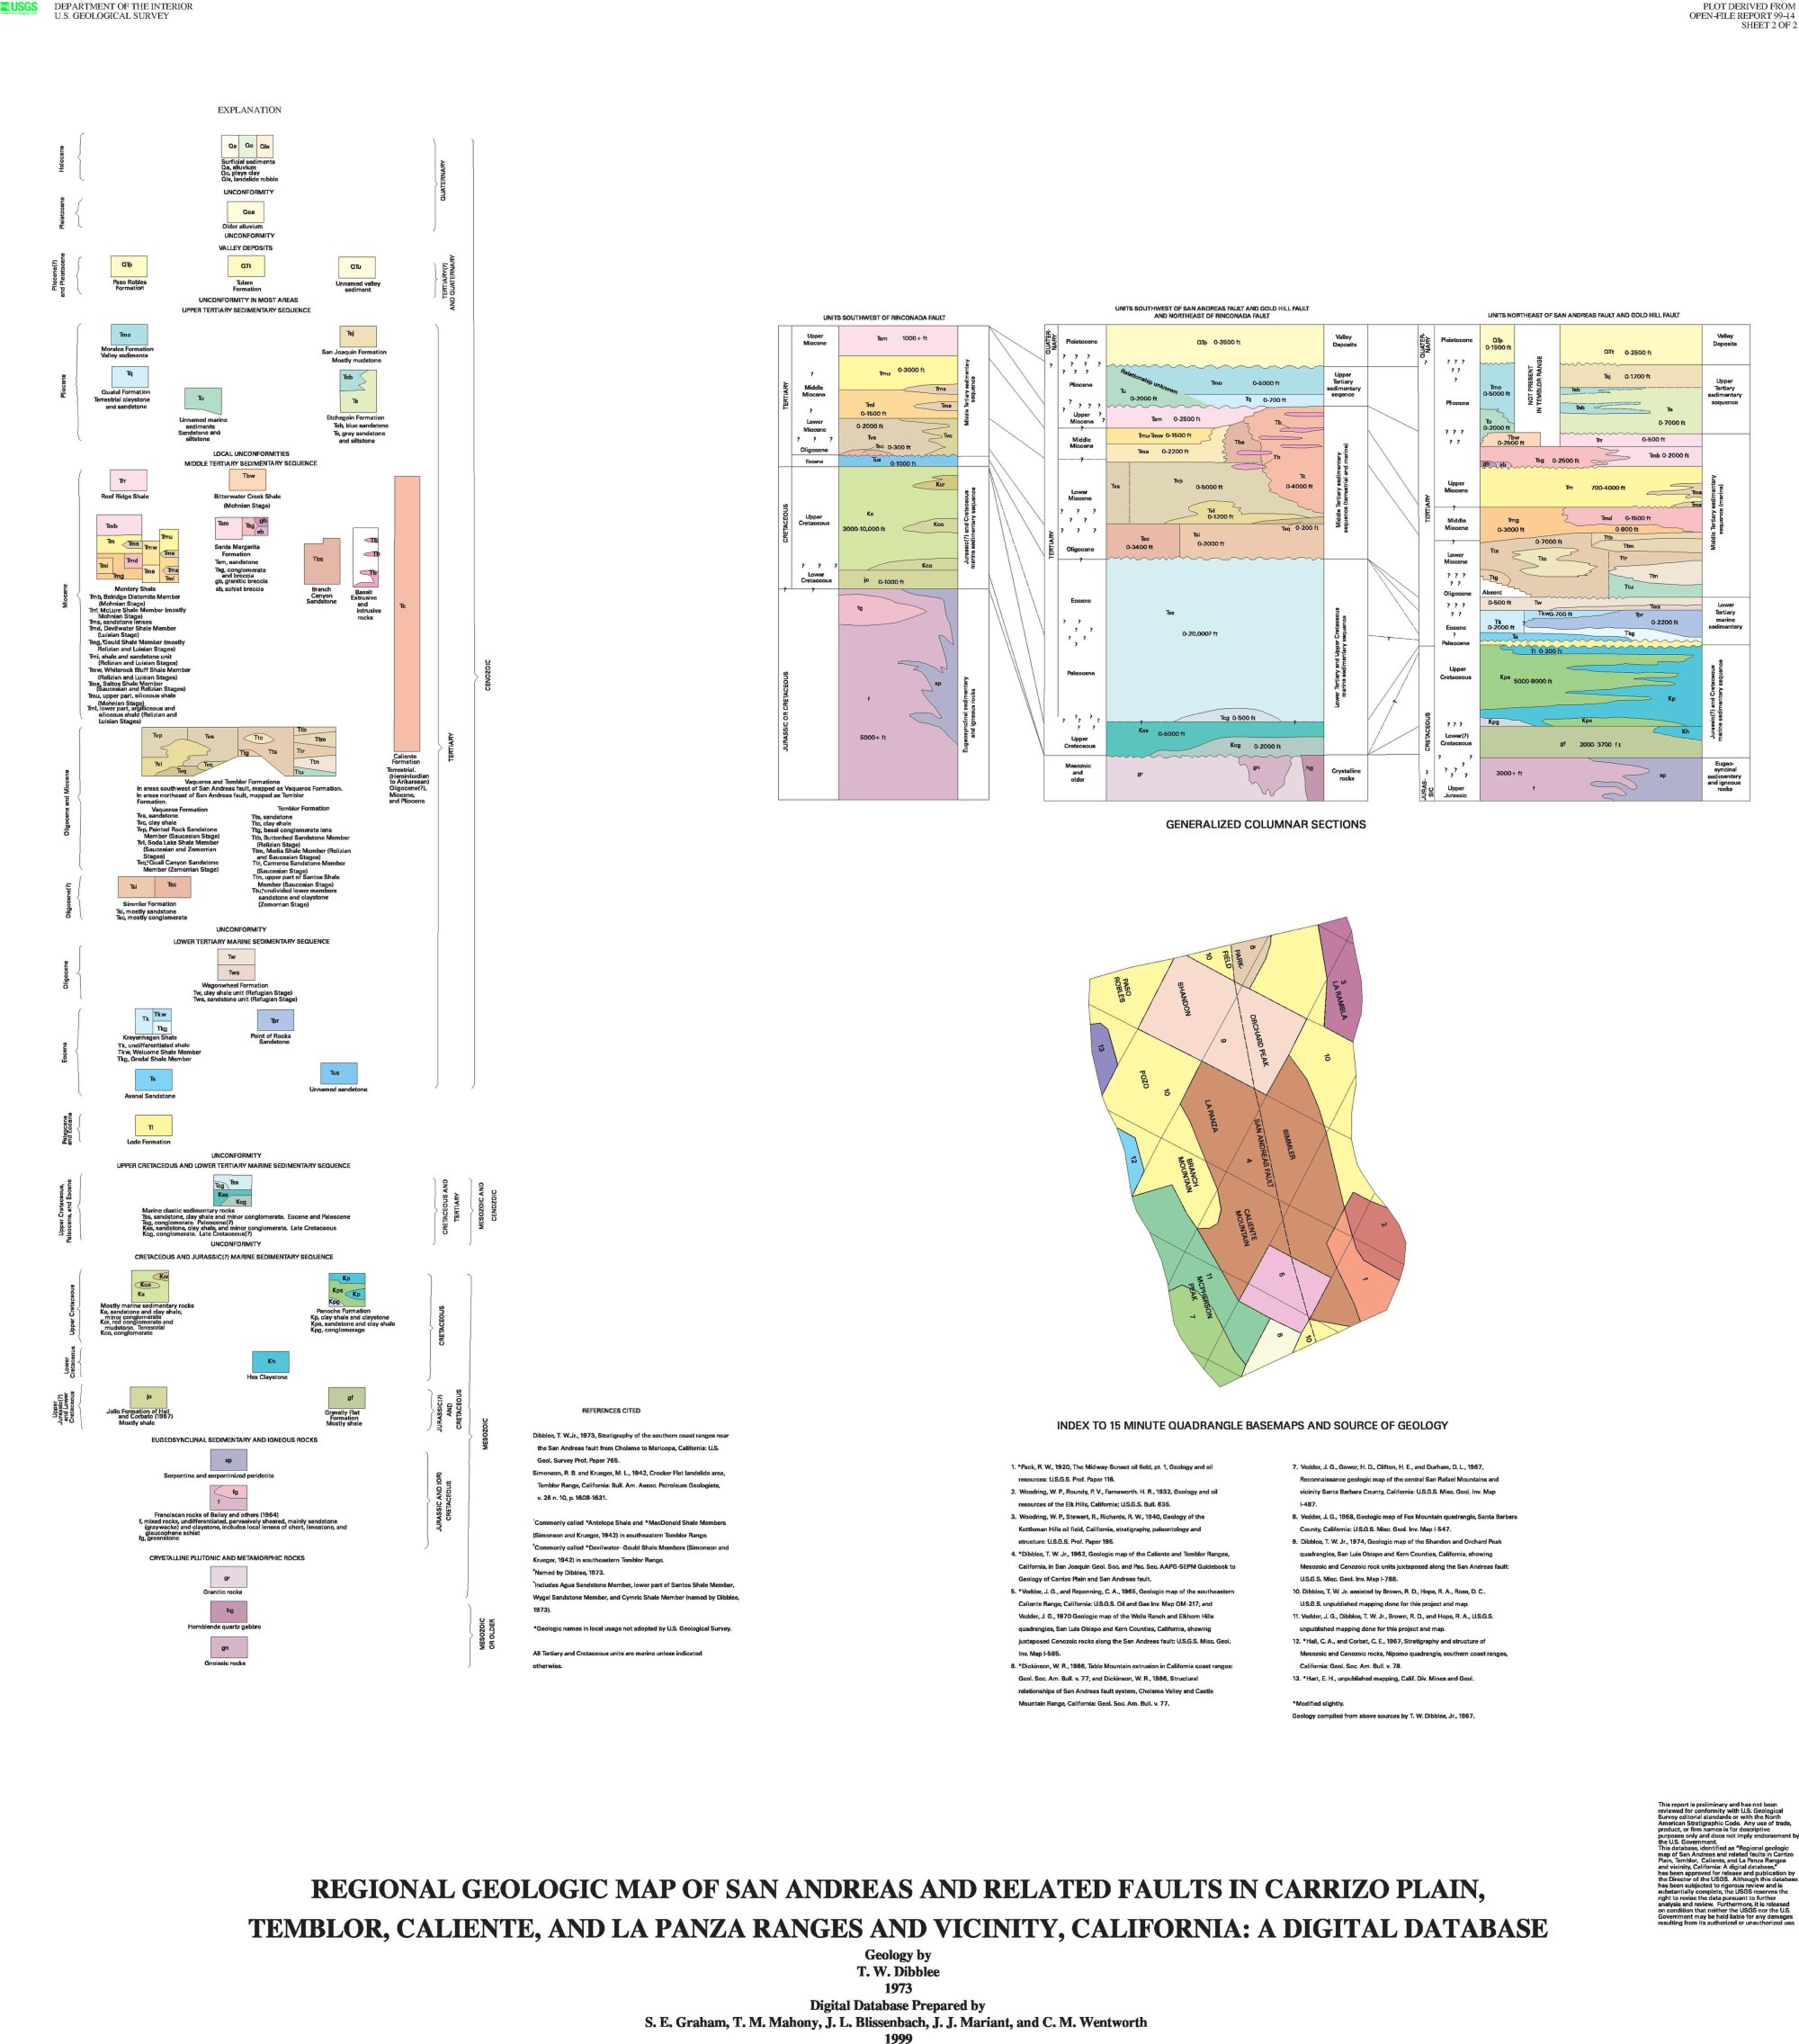 hight resolution of file explanation regional geologic map of san andreas and related faults in carrizo plain temblor caliente and la panza ranges and vicinity california